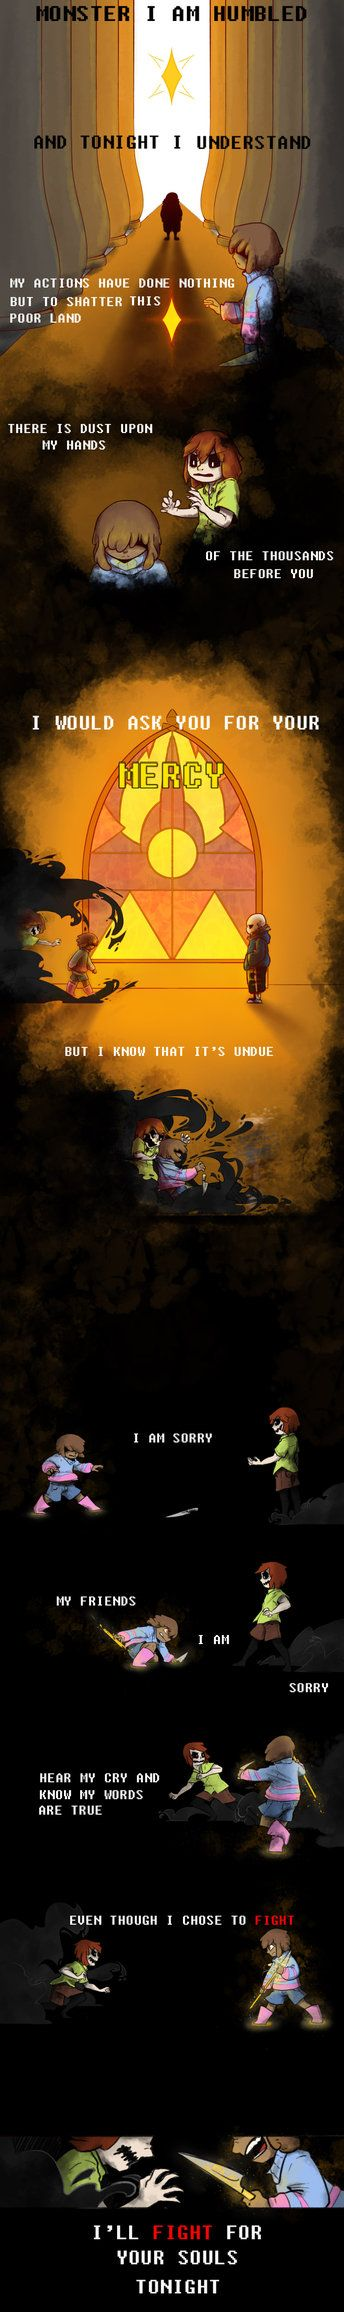 Undertale x the book of life